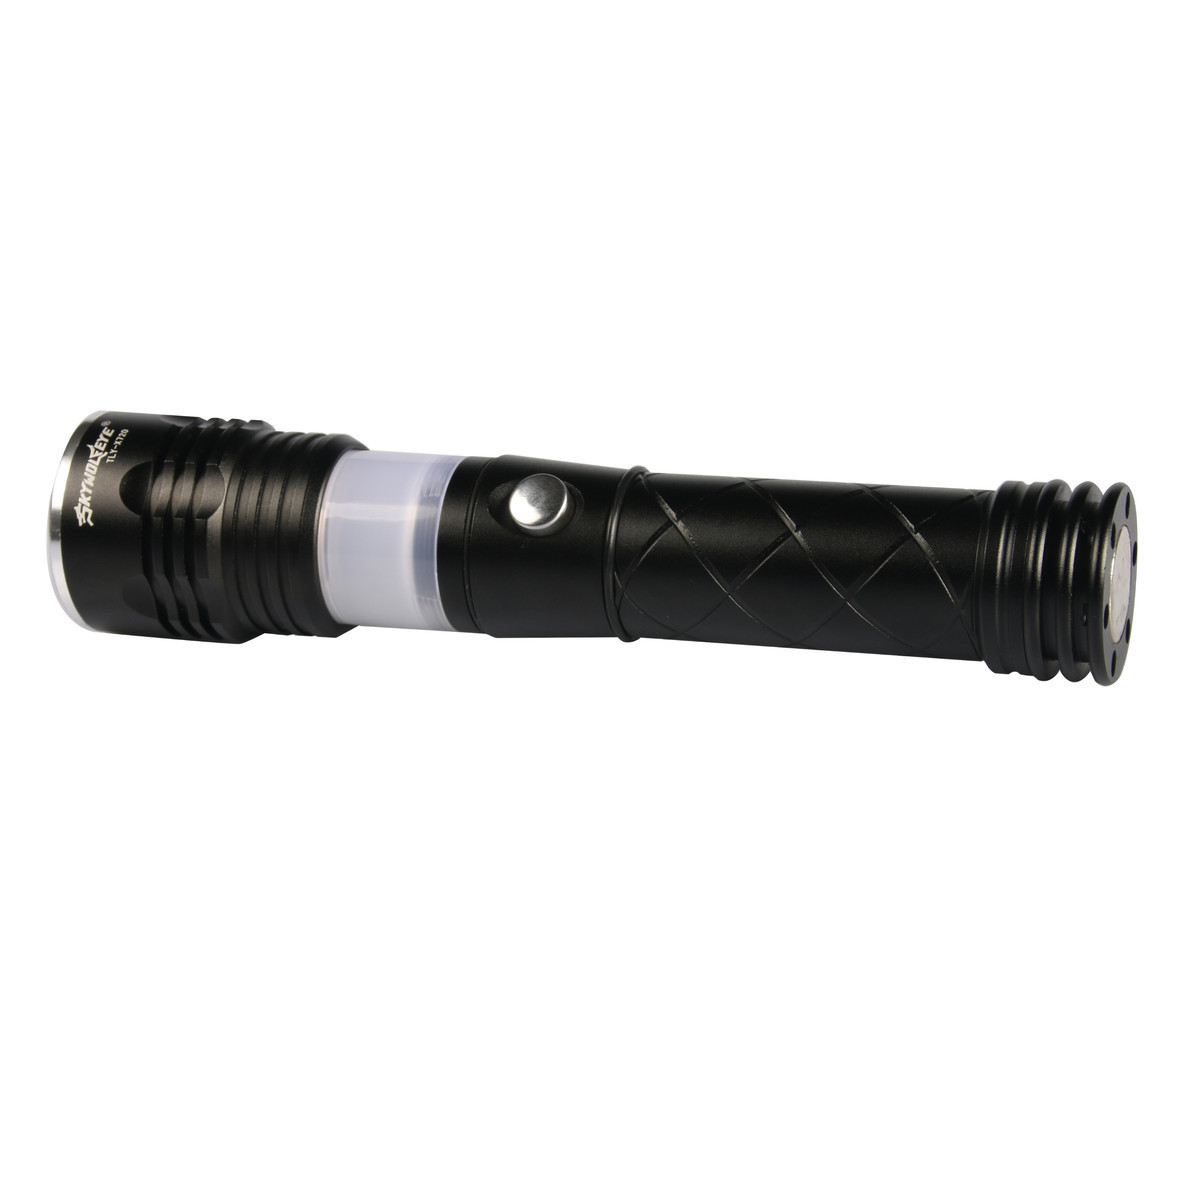 Skywolfeye led flashlight t6 zoomable 3 modes aluminium torch skywolfeye led flashlight t6 zoomable 3 modes aluminium torch camping lamp tail with magnet 18650 rechargeable battery charger in flashlights torches from parisarafo Gallery